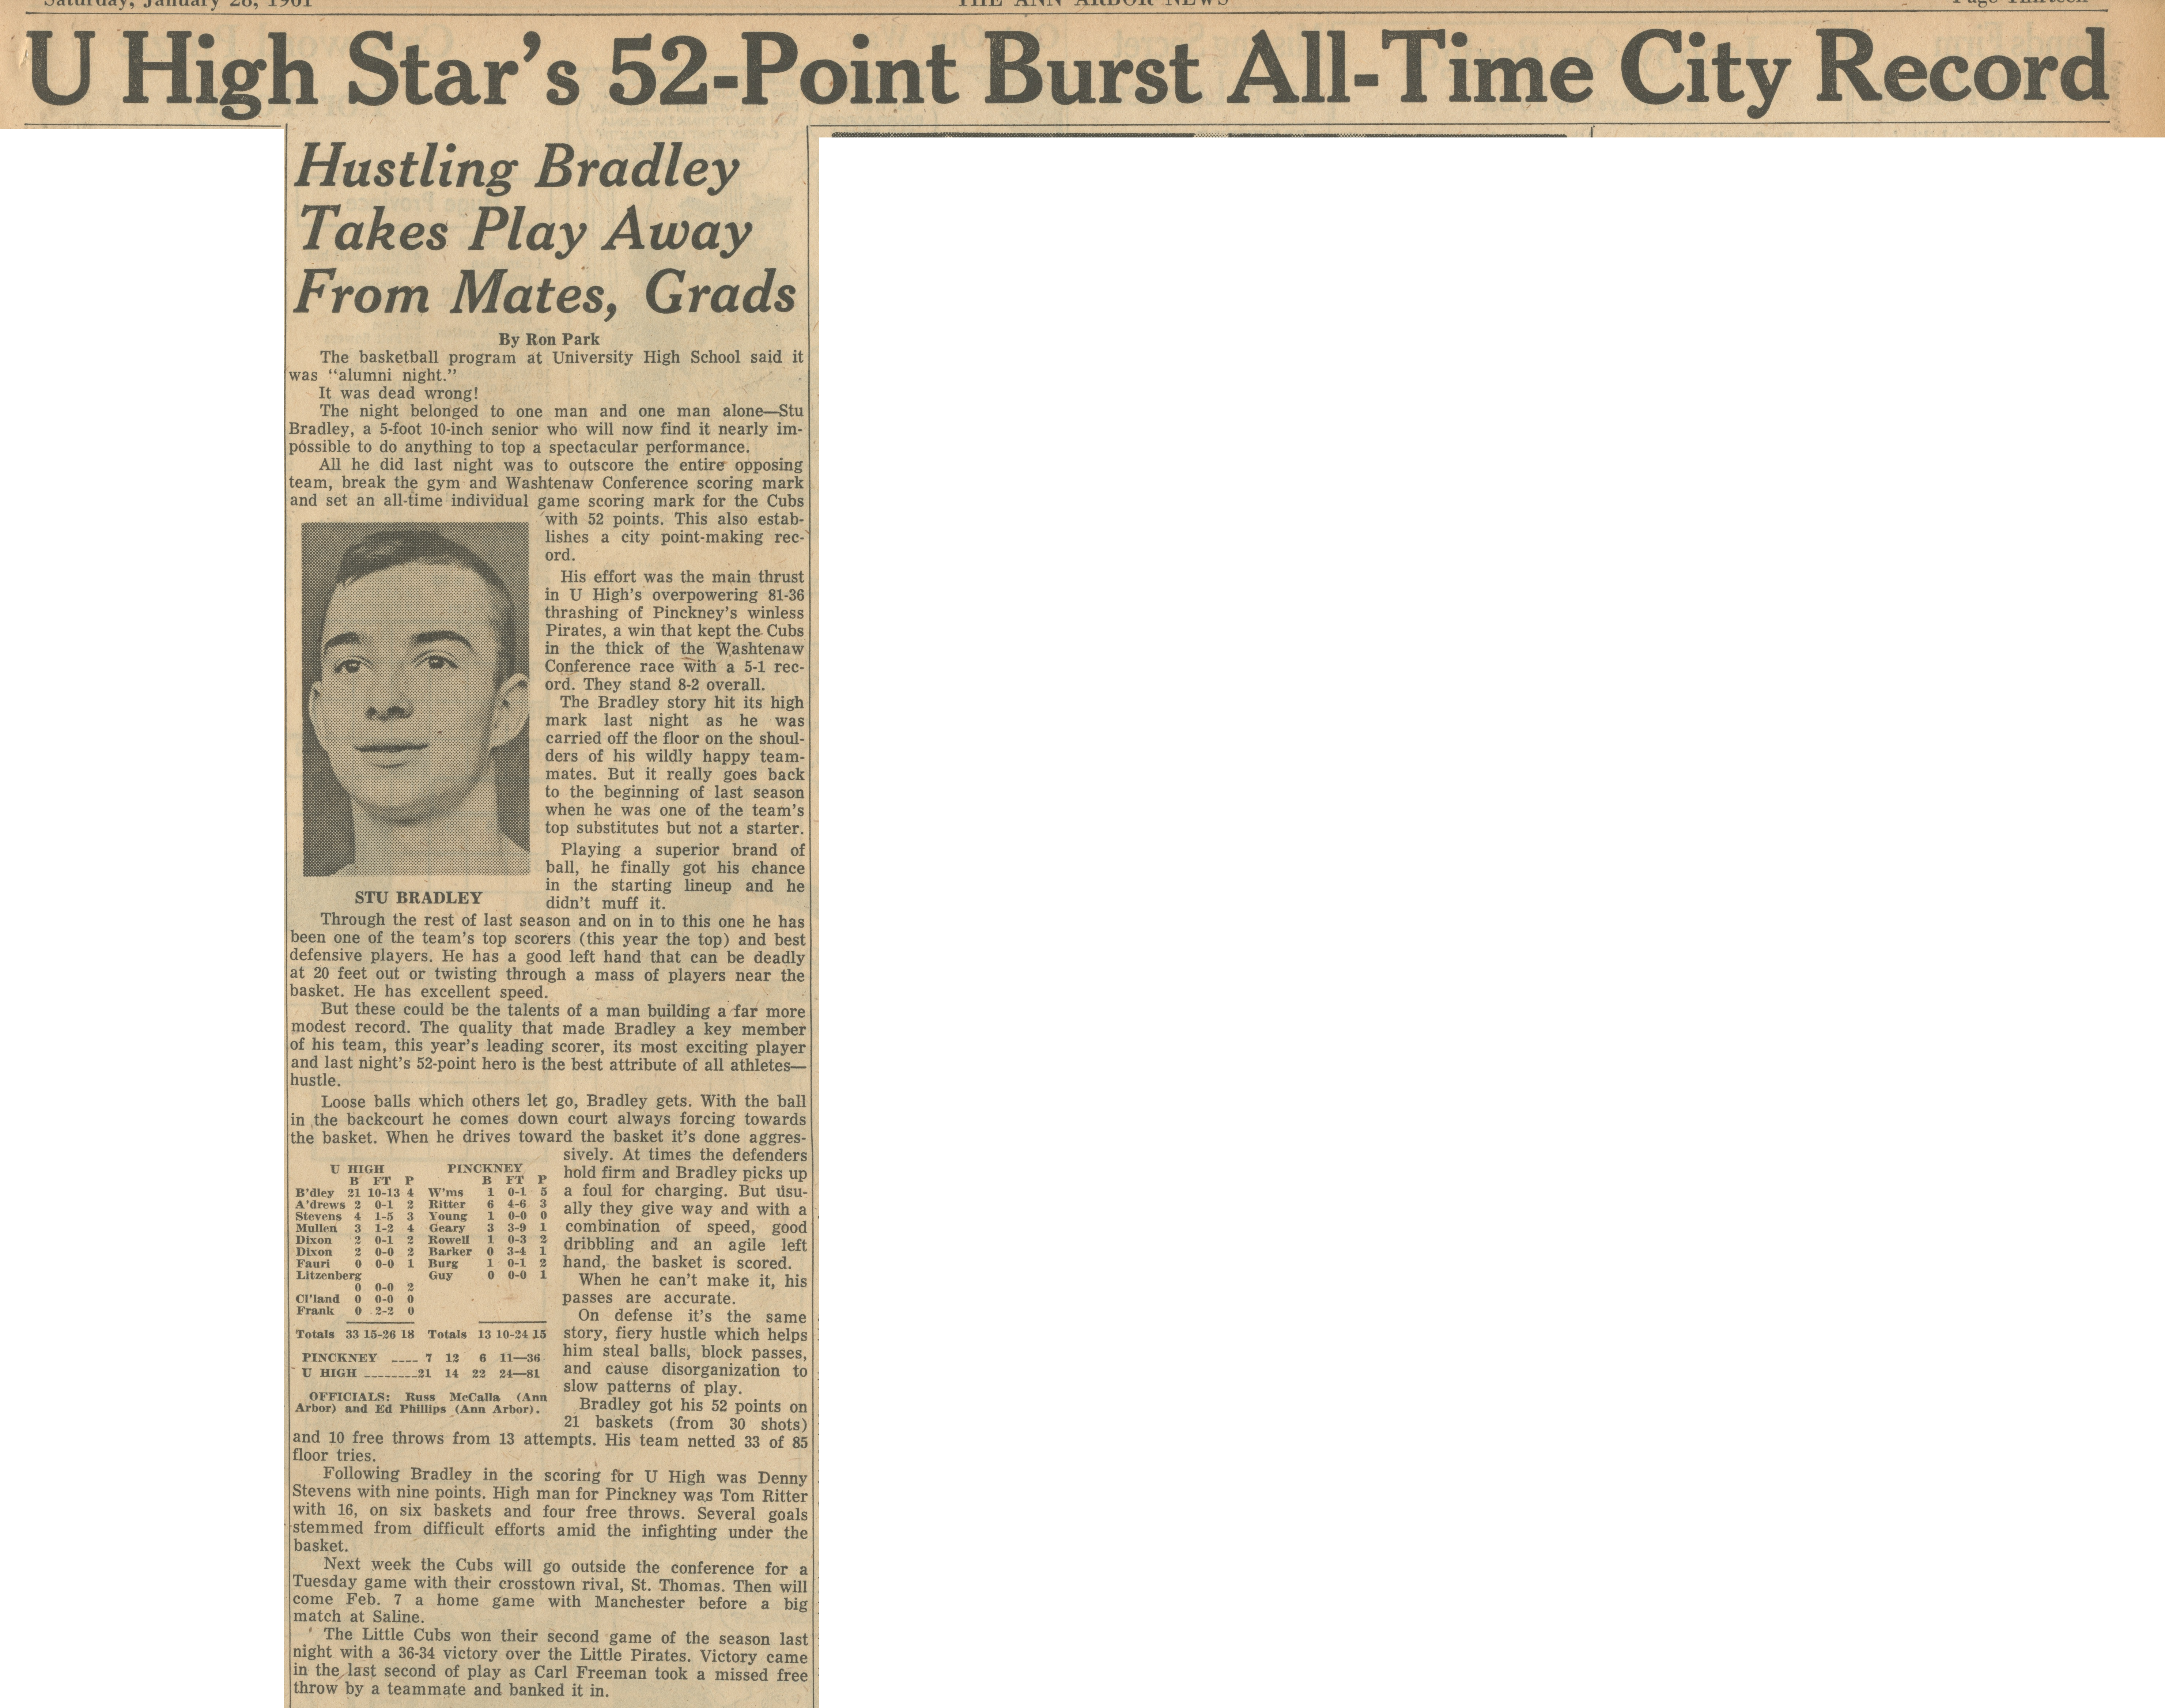 U High Star's 52-Point Burst All-Time City Record image